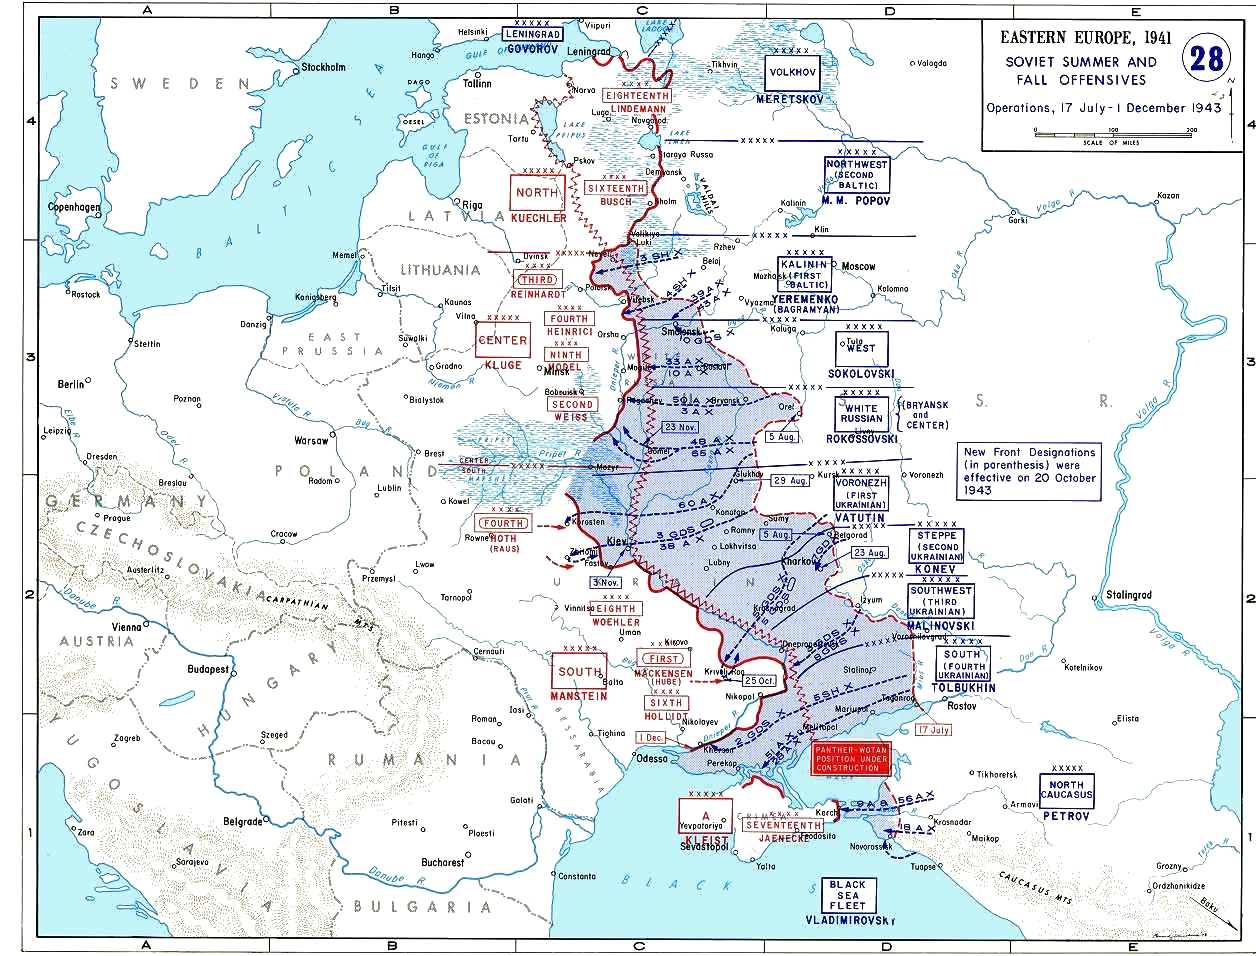 Battle of the Dnieper - Wikipedia on poltava map, detailed city street map, donbass ukraine map, dnipropetrovsk ukraine map, donetsk map, ato ukraine map, ukraine religion map, kiev map, odessa ukraine map, east ukraine map, belaya tserkov ukraine map, bessarabia ukraine map, crimea region ukraine map, ukraine military bases map, minsk map, the lake of ozarks map, vinnytsia ukraine map, kramatorsk ukraine map, kharkiv military map, kharkiv ukraine map,